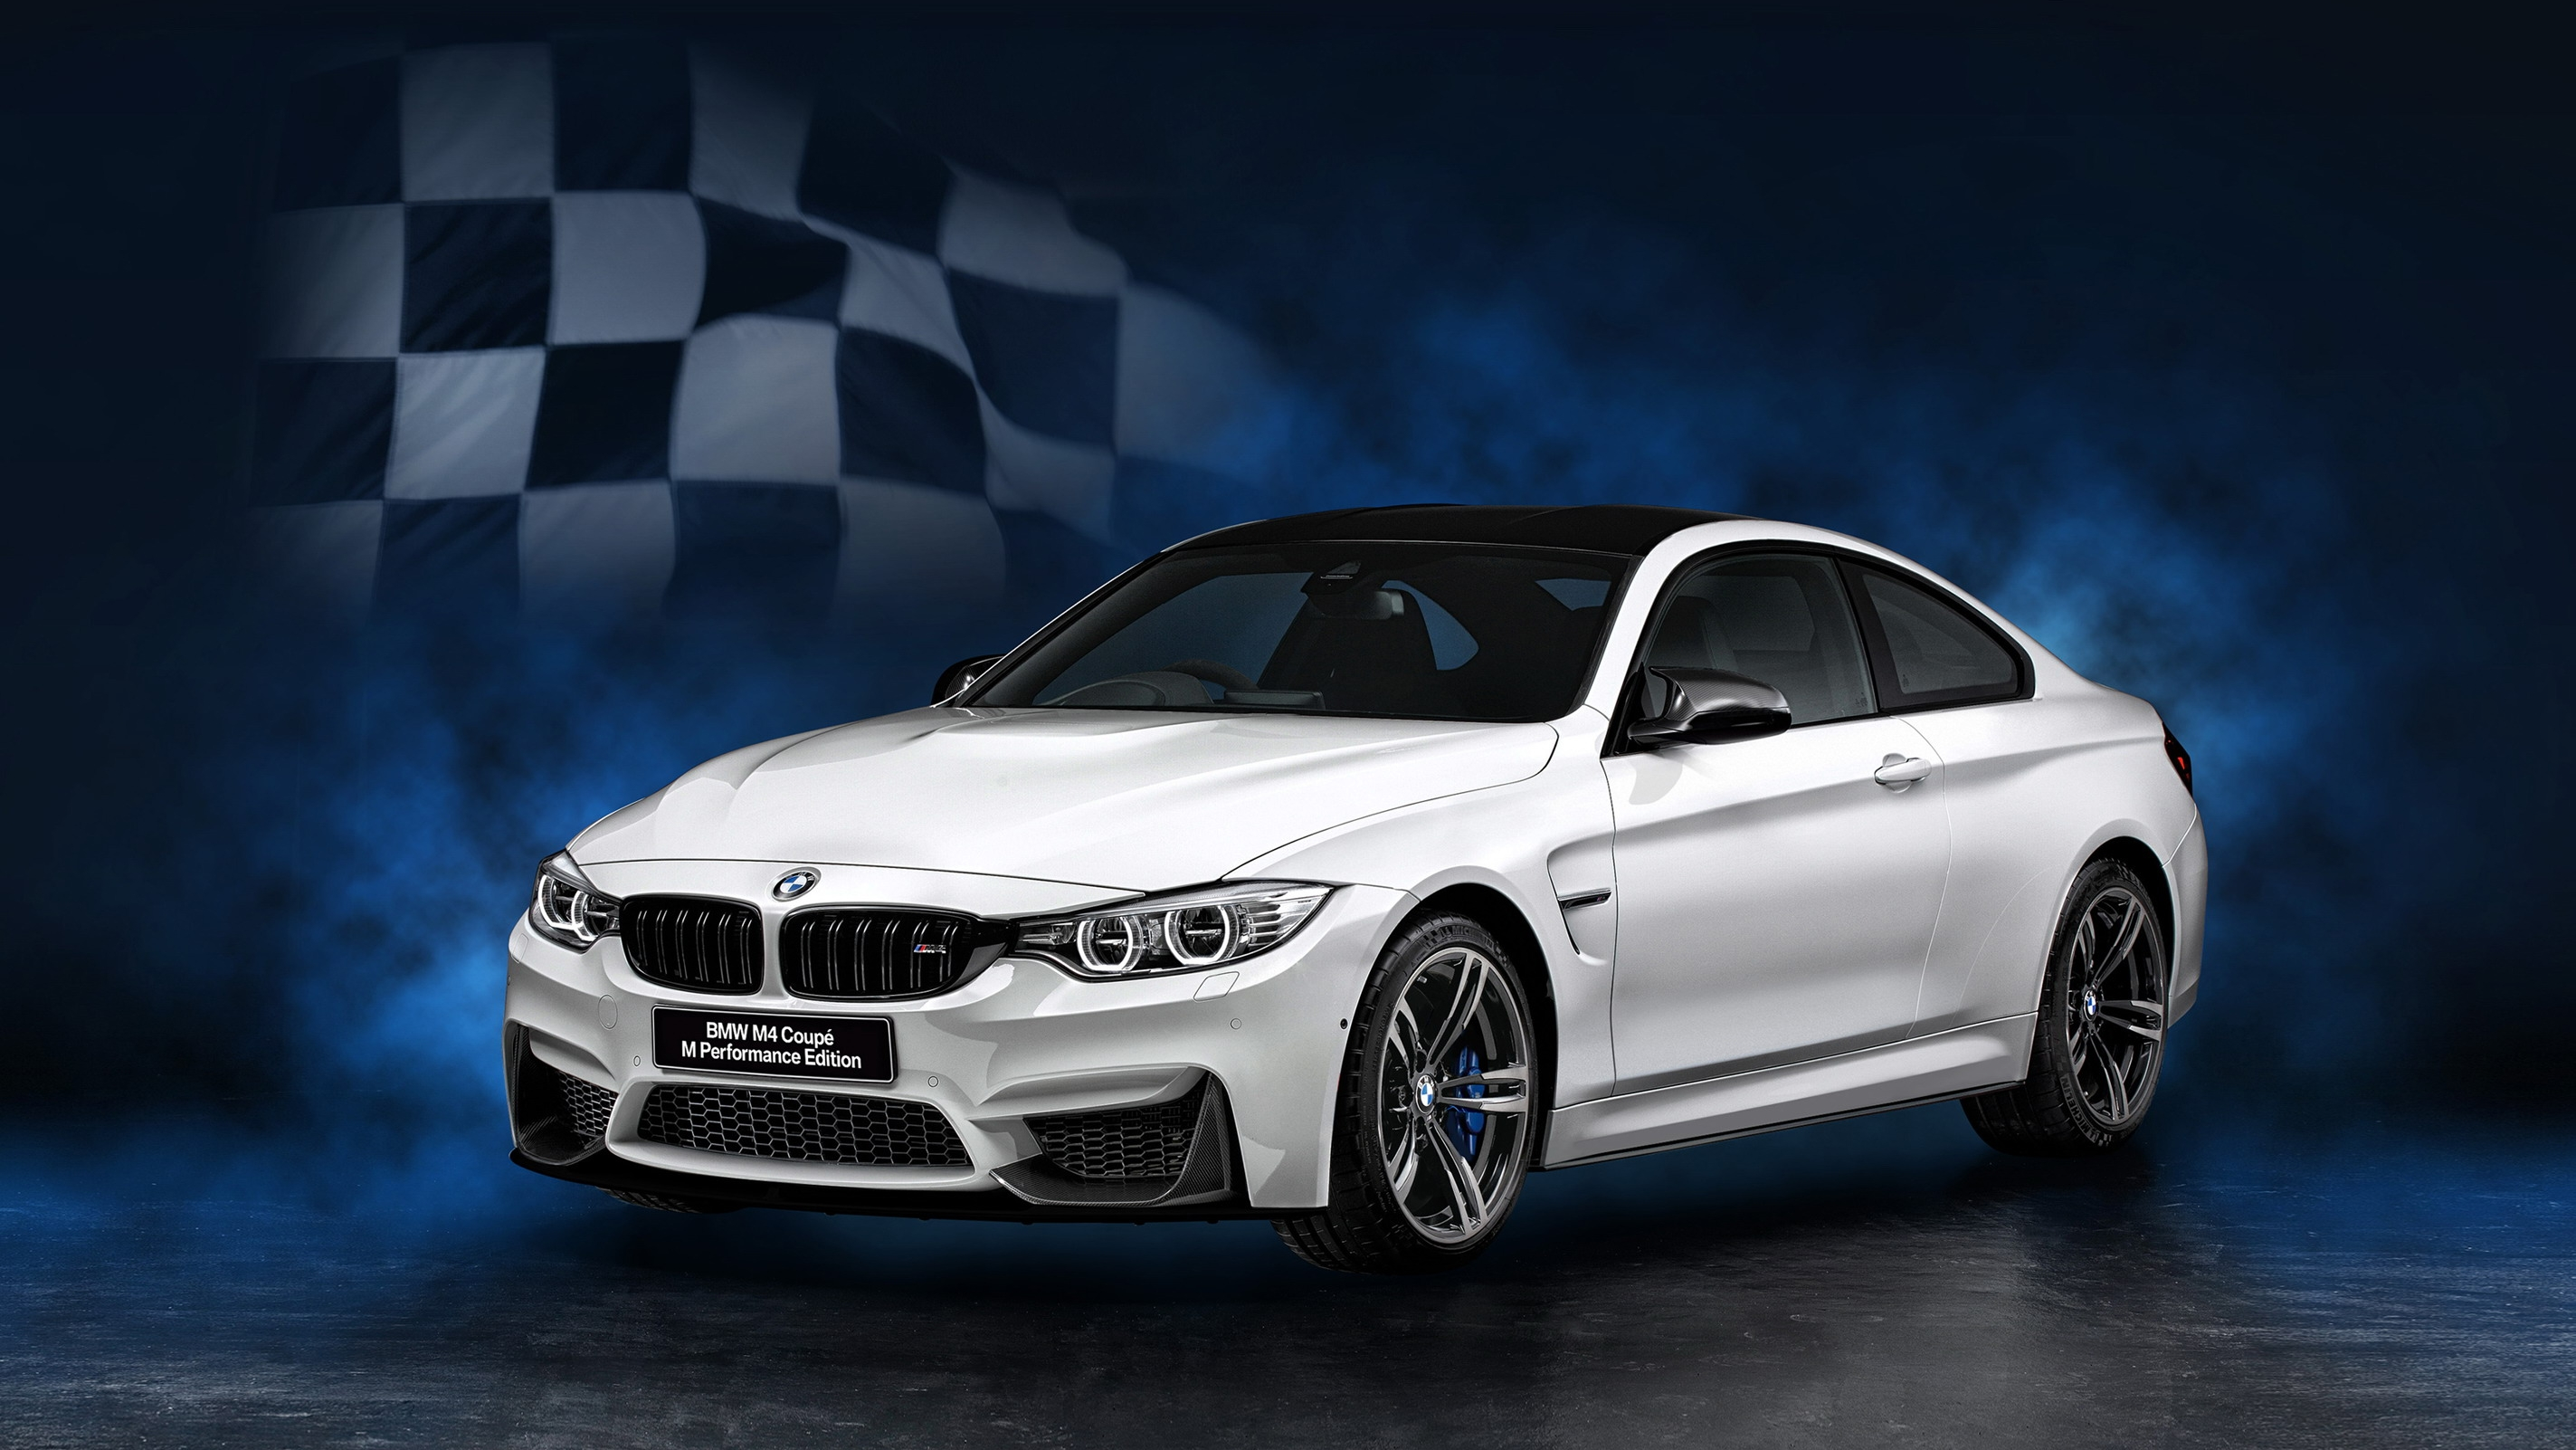 2015 bmw m4 coupe m performance edition pictures photos. Black Bedroom Furniture Sets. Home Design Ideas